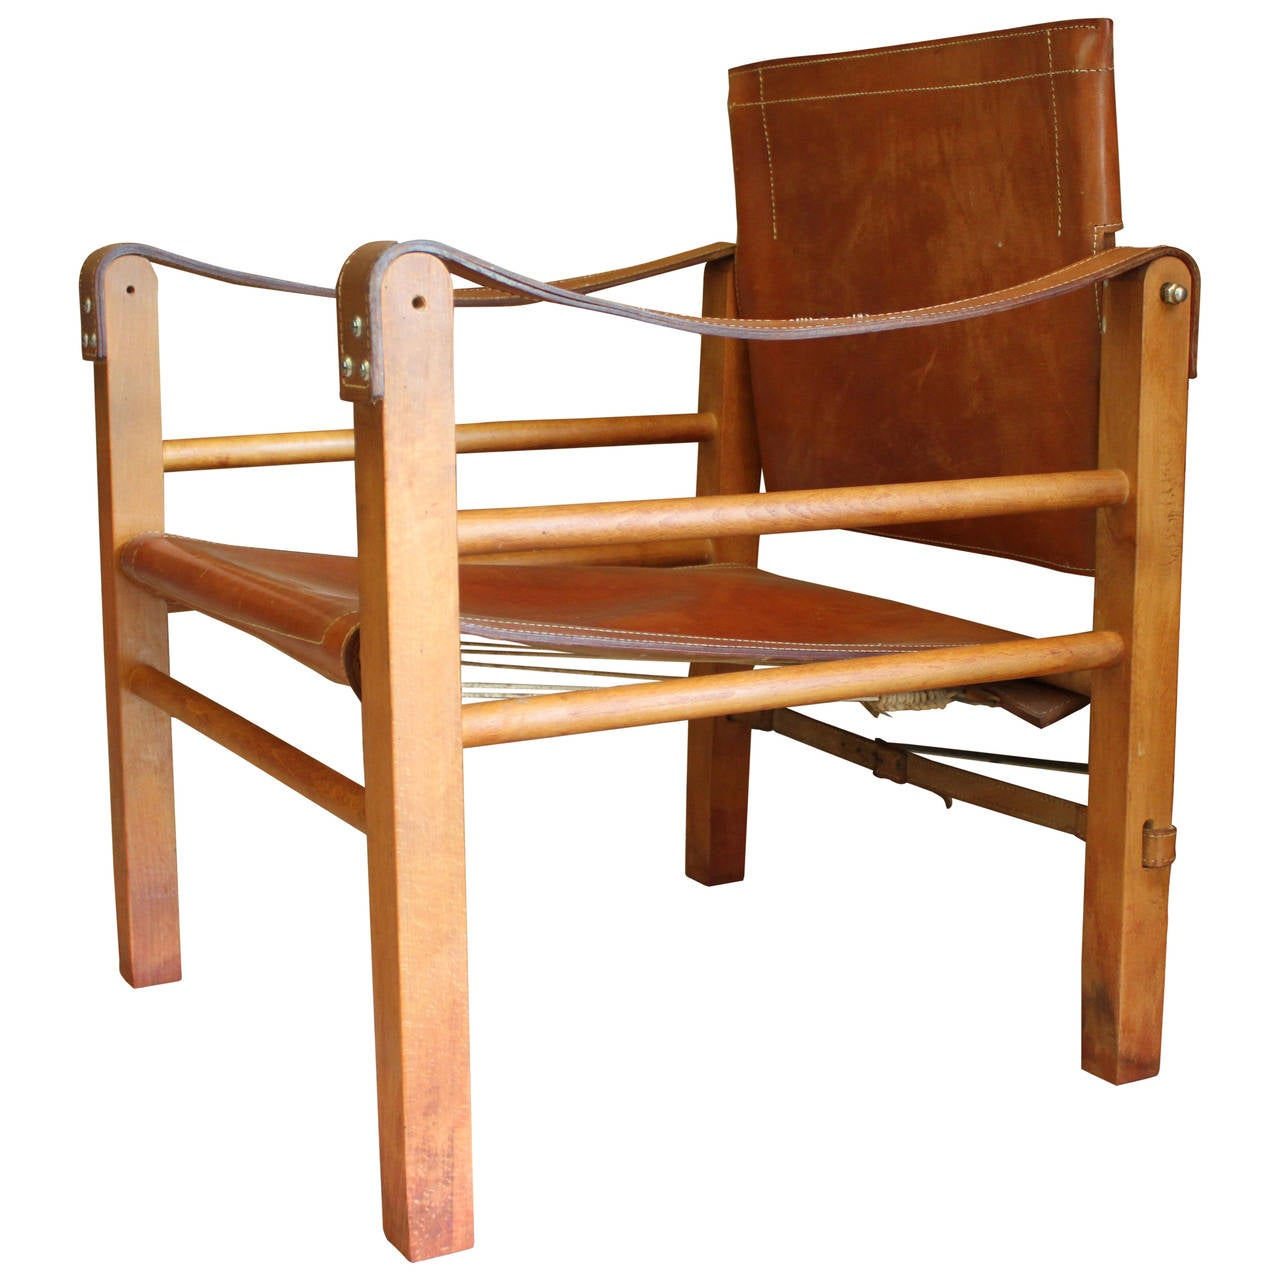 Of four chairs in oak and patinated cognac leather for sale at 1stdibs - Cognac Leather Safari Chair 1